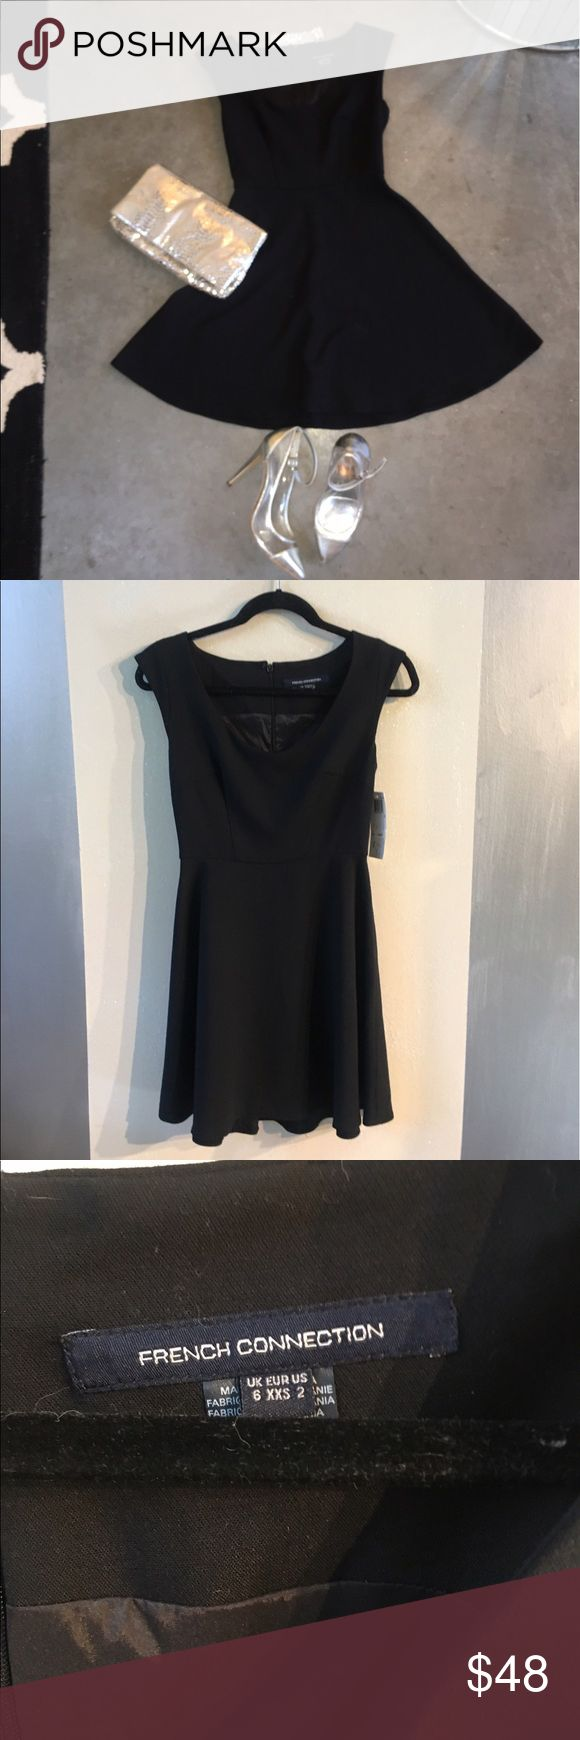 💋HUGE DISCOUNT 💋 NWT French Connection Dress Gorgeous black, fit and flare French Connection dress with a v neck cut and a center zipper down the back.  This dress is brand new with tags and will look great for many different occasions. French Connection Dresses